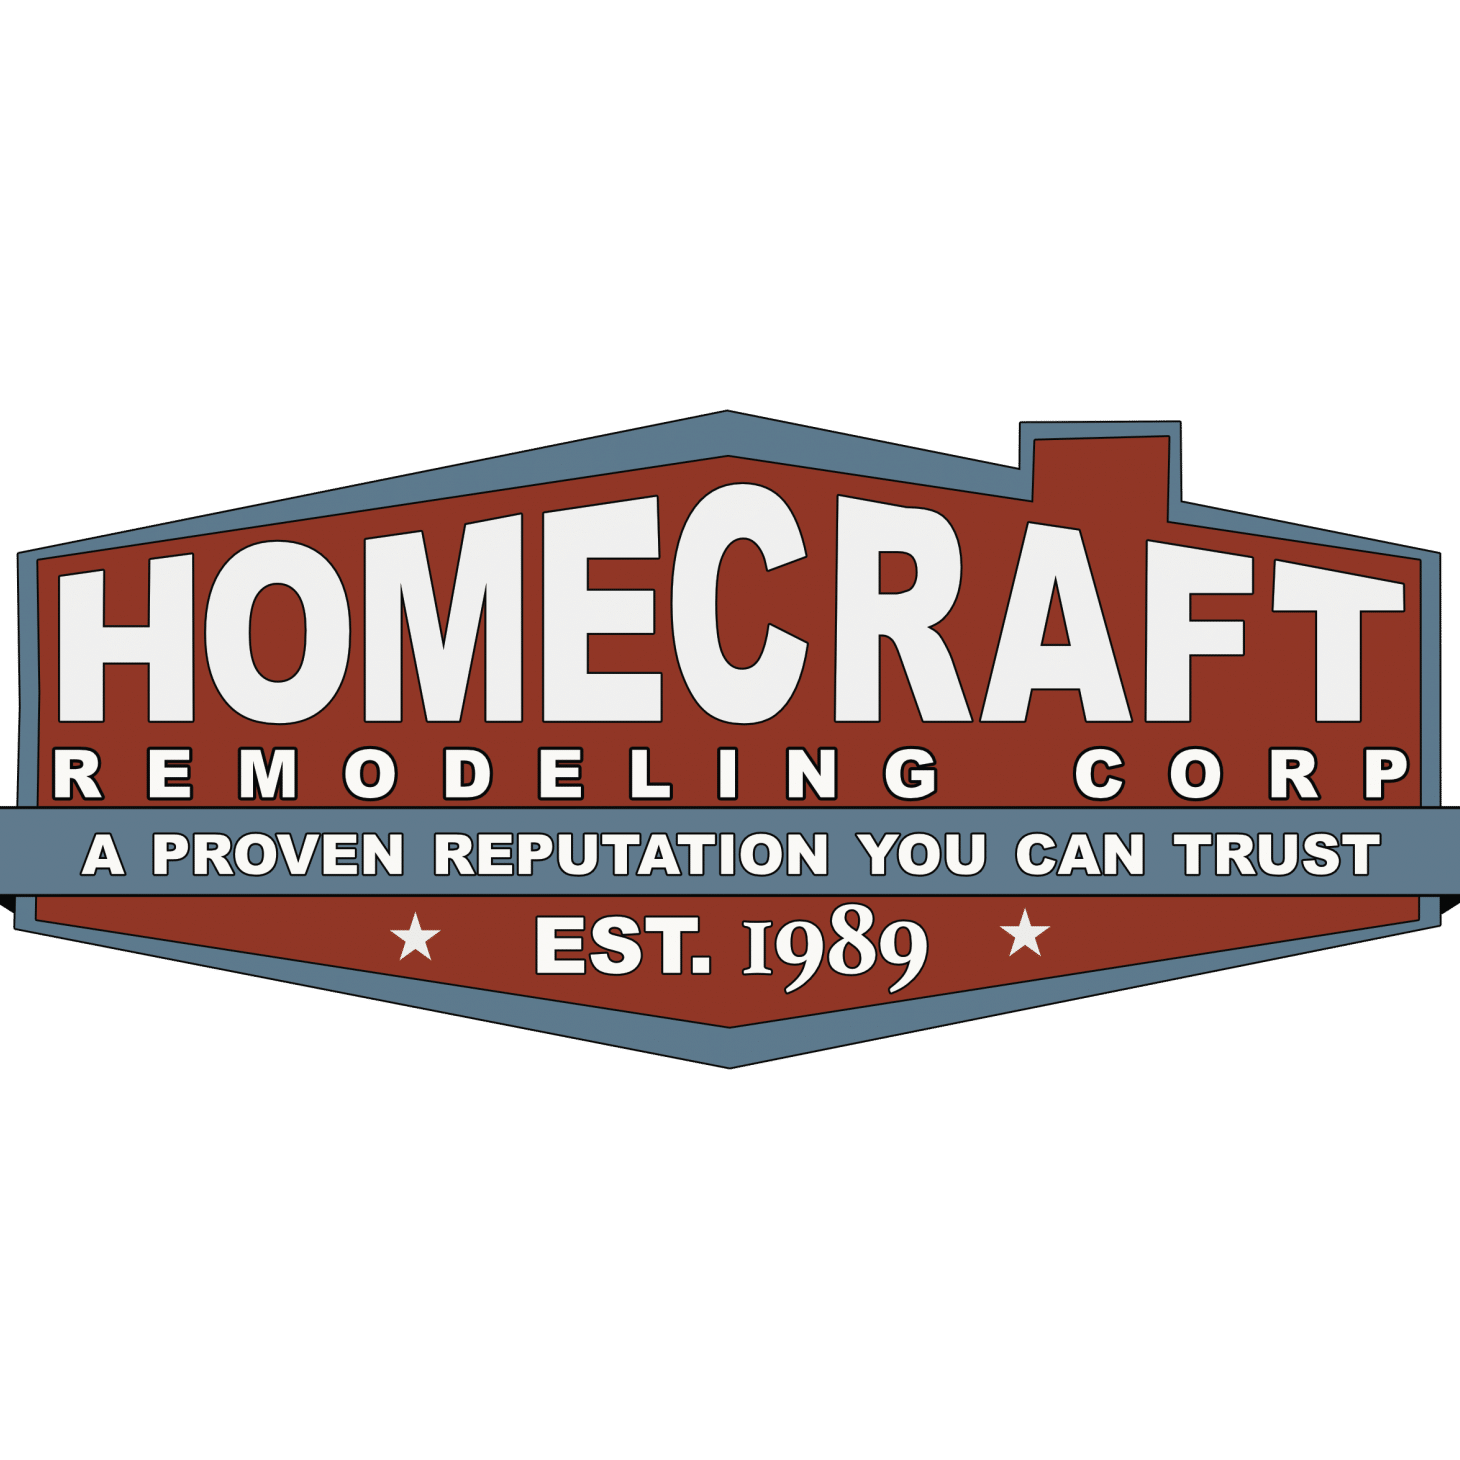 Homecraft Remodeling